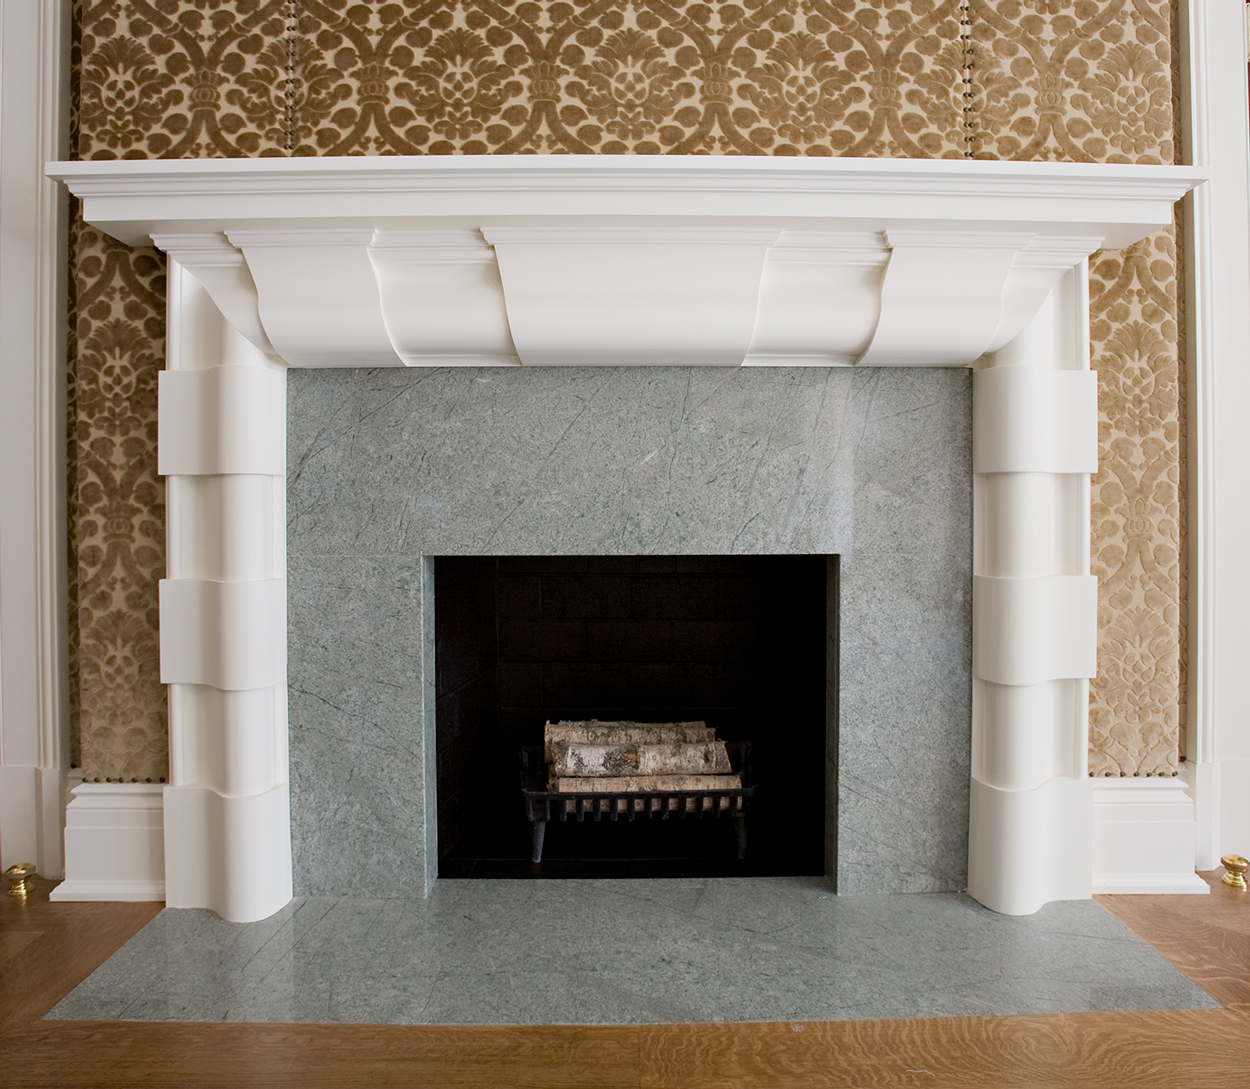 Costa Esmeralda Fireplace Surround